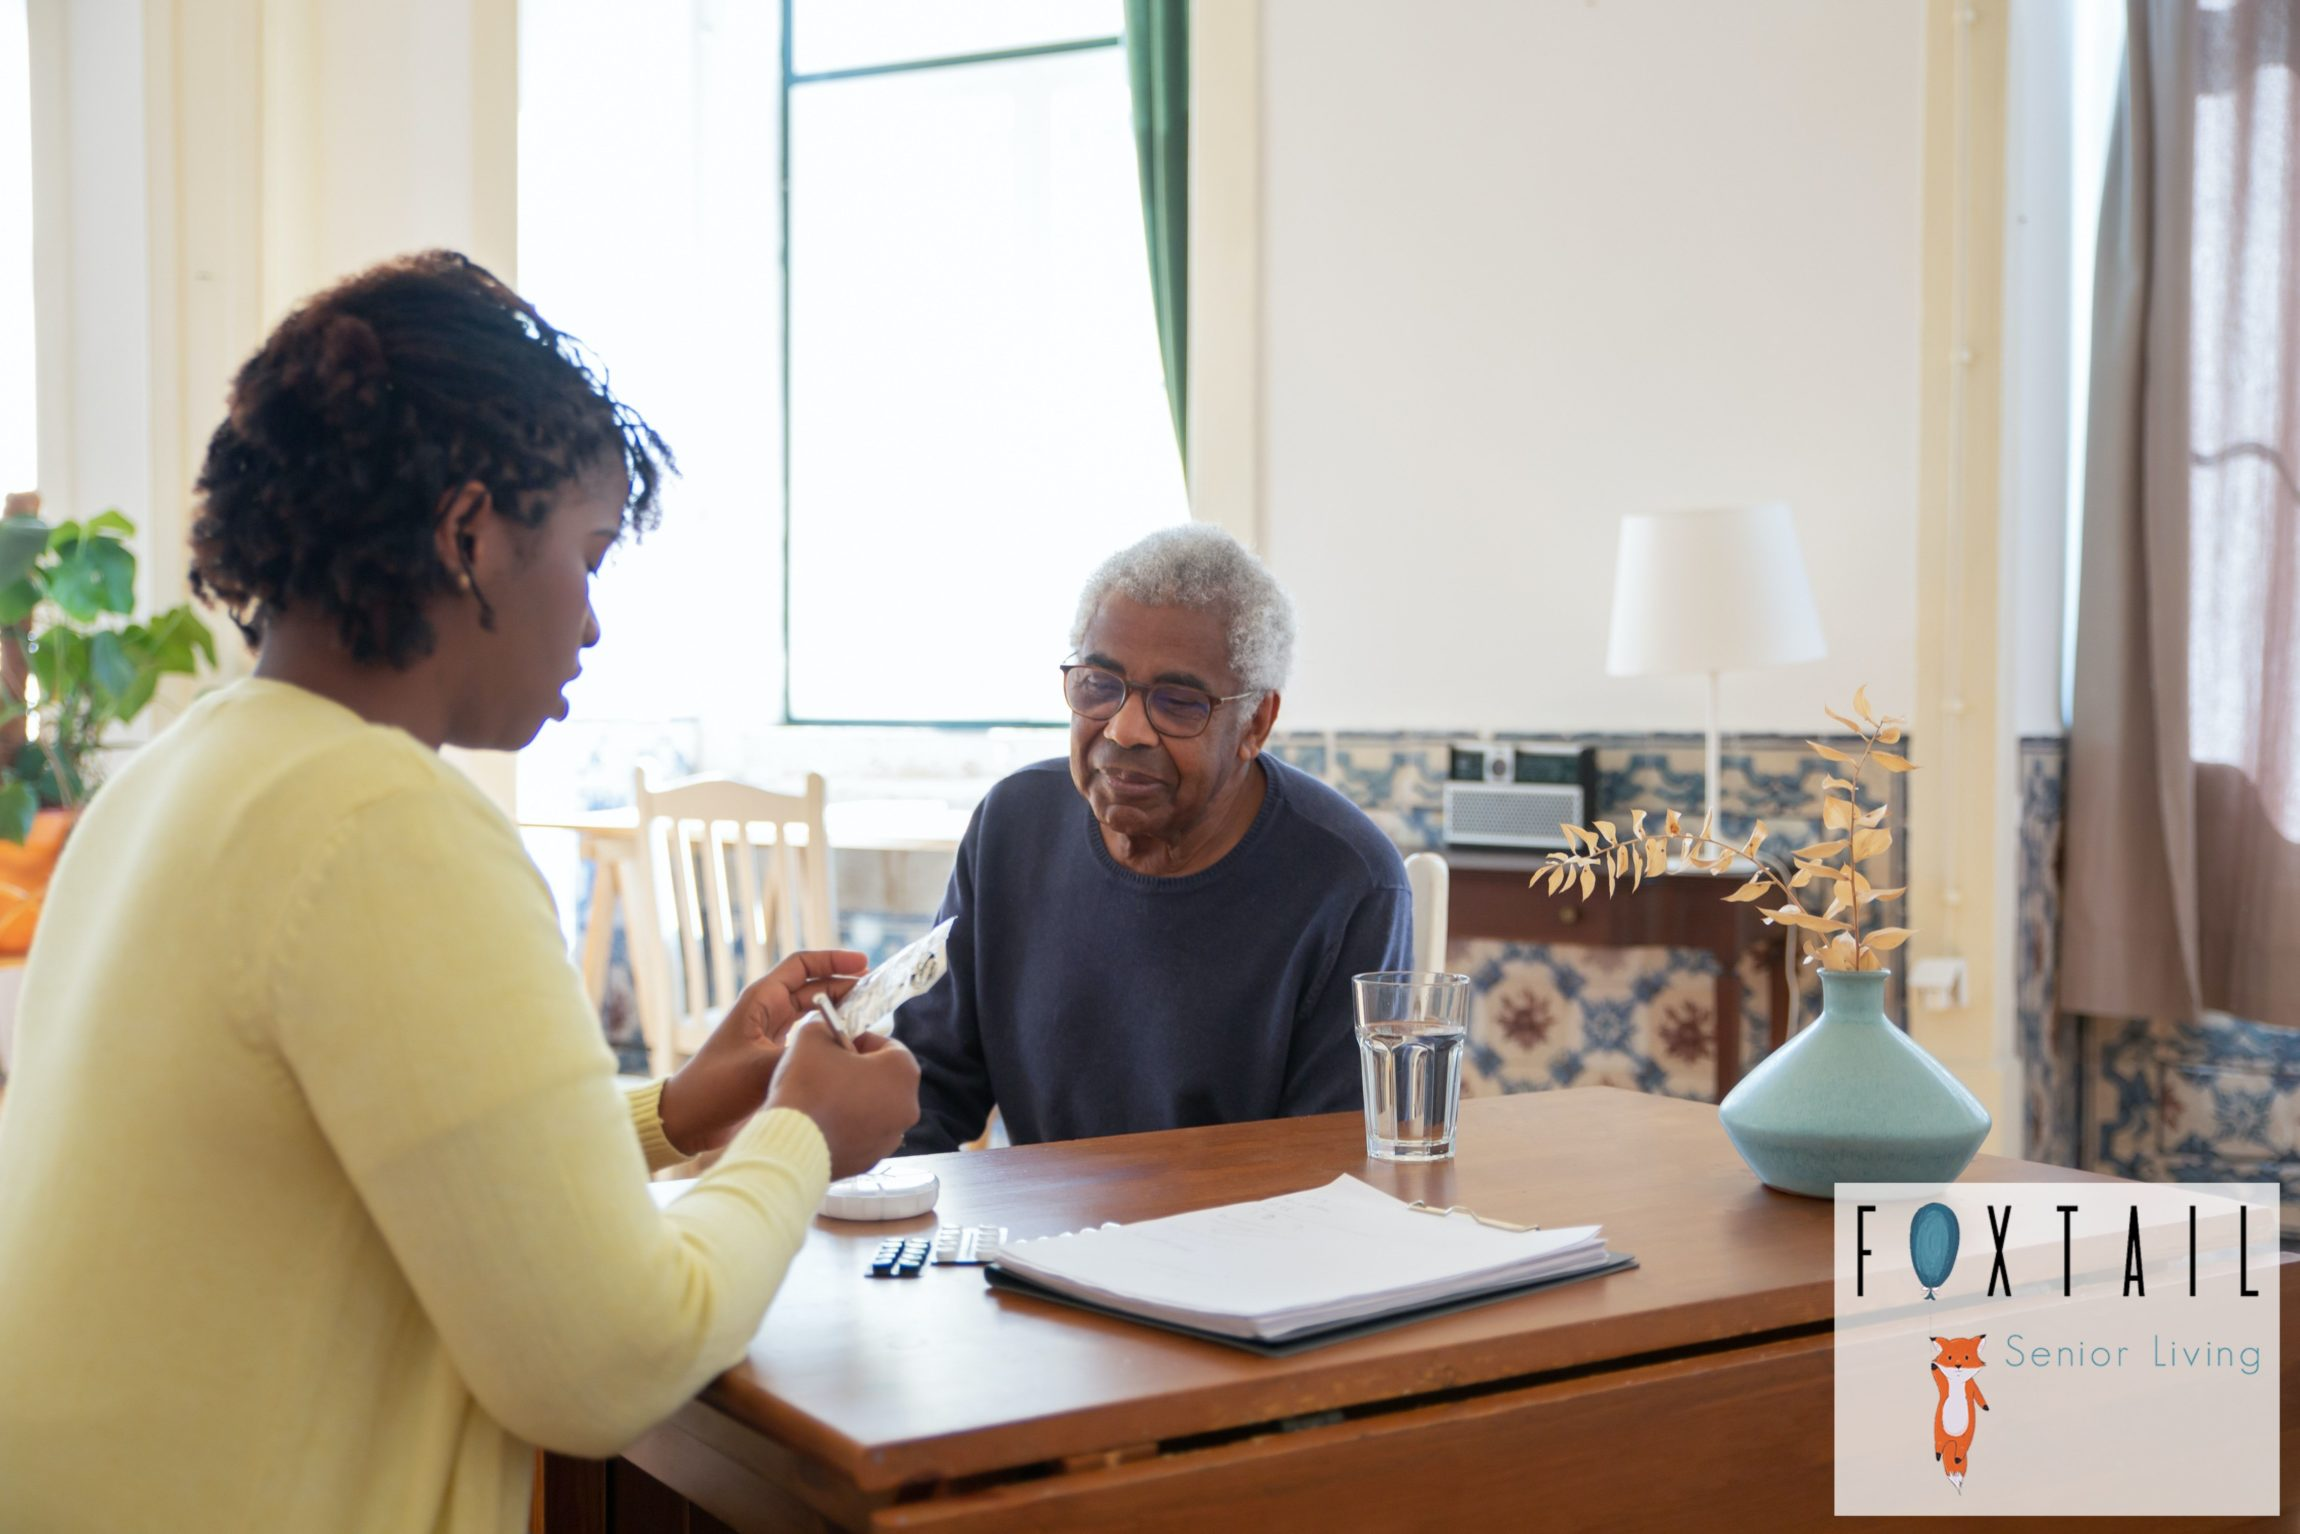 A lady in a yellow sweater giving a man in a black sweater his daily pills at a table.